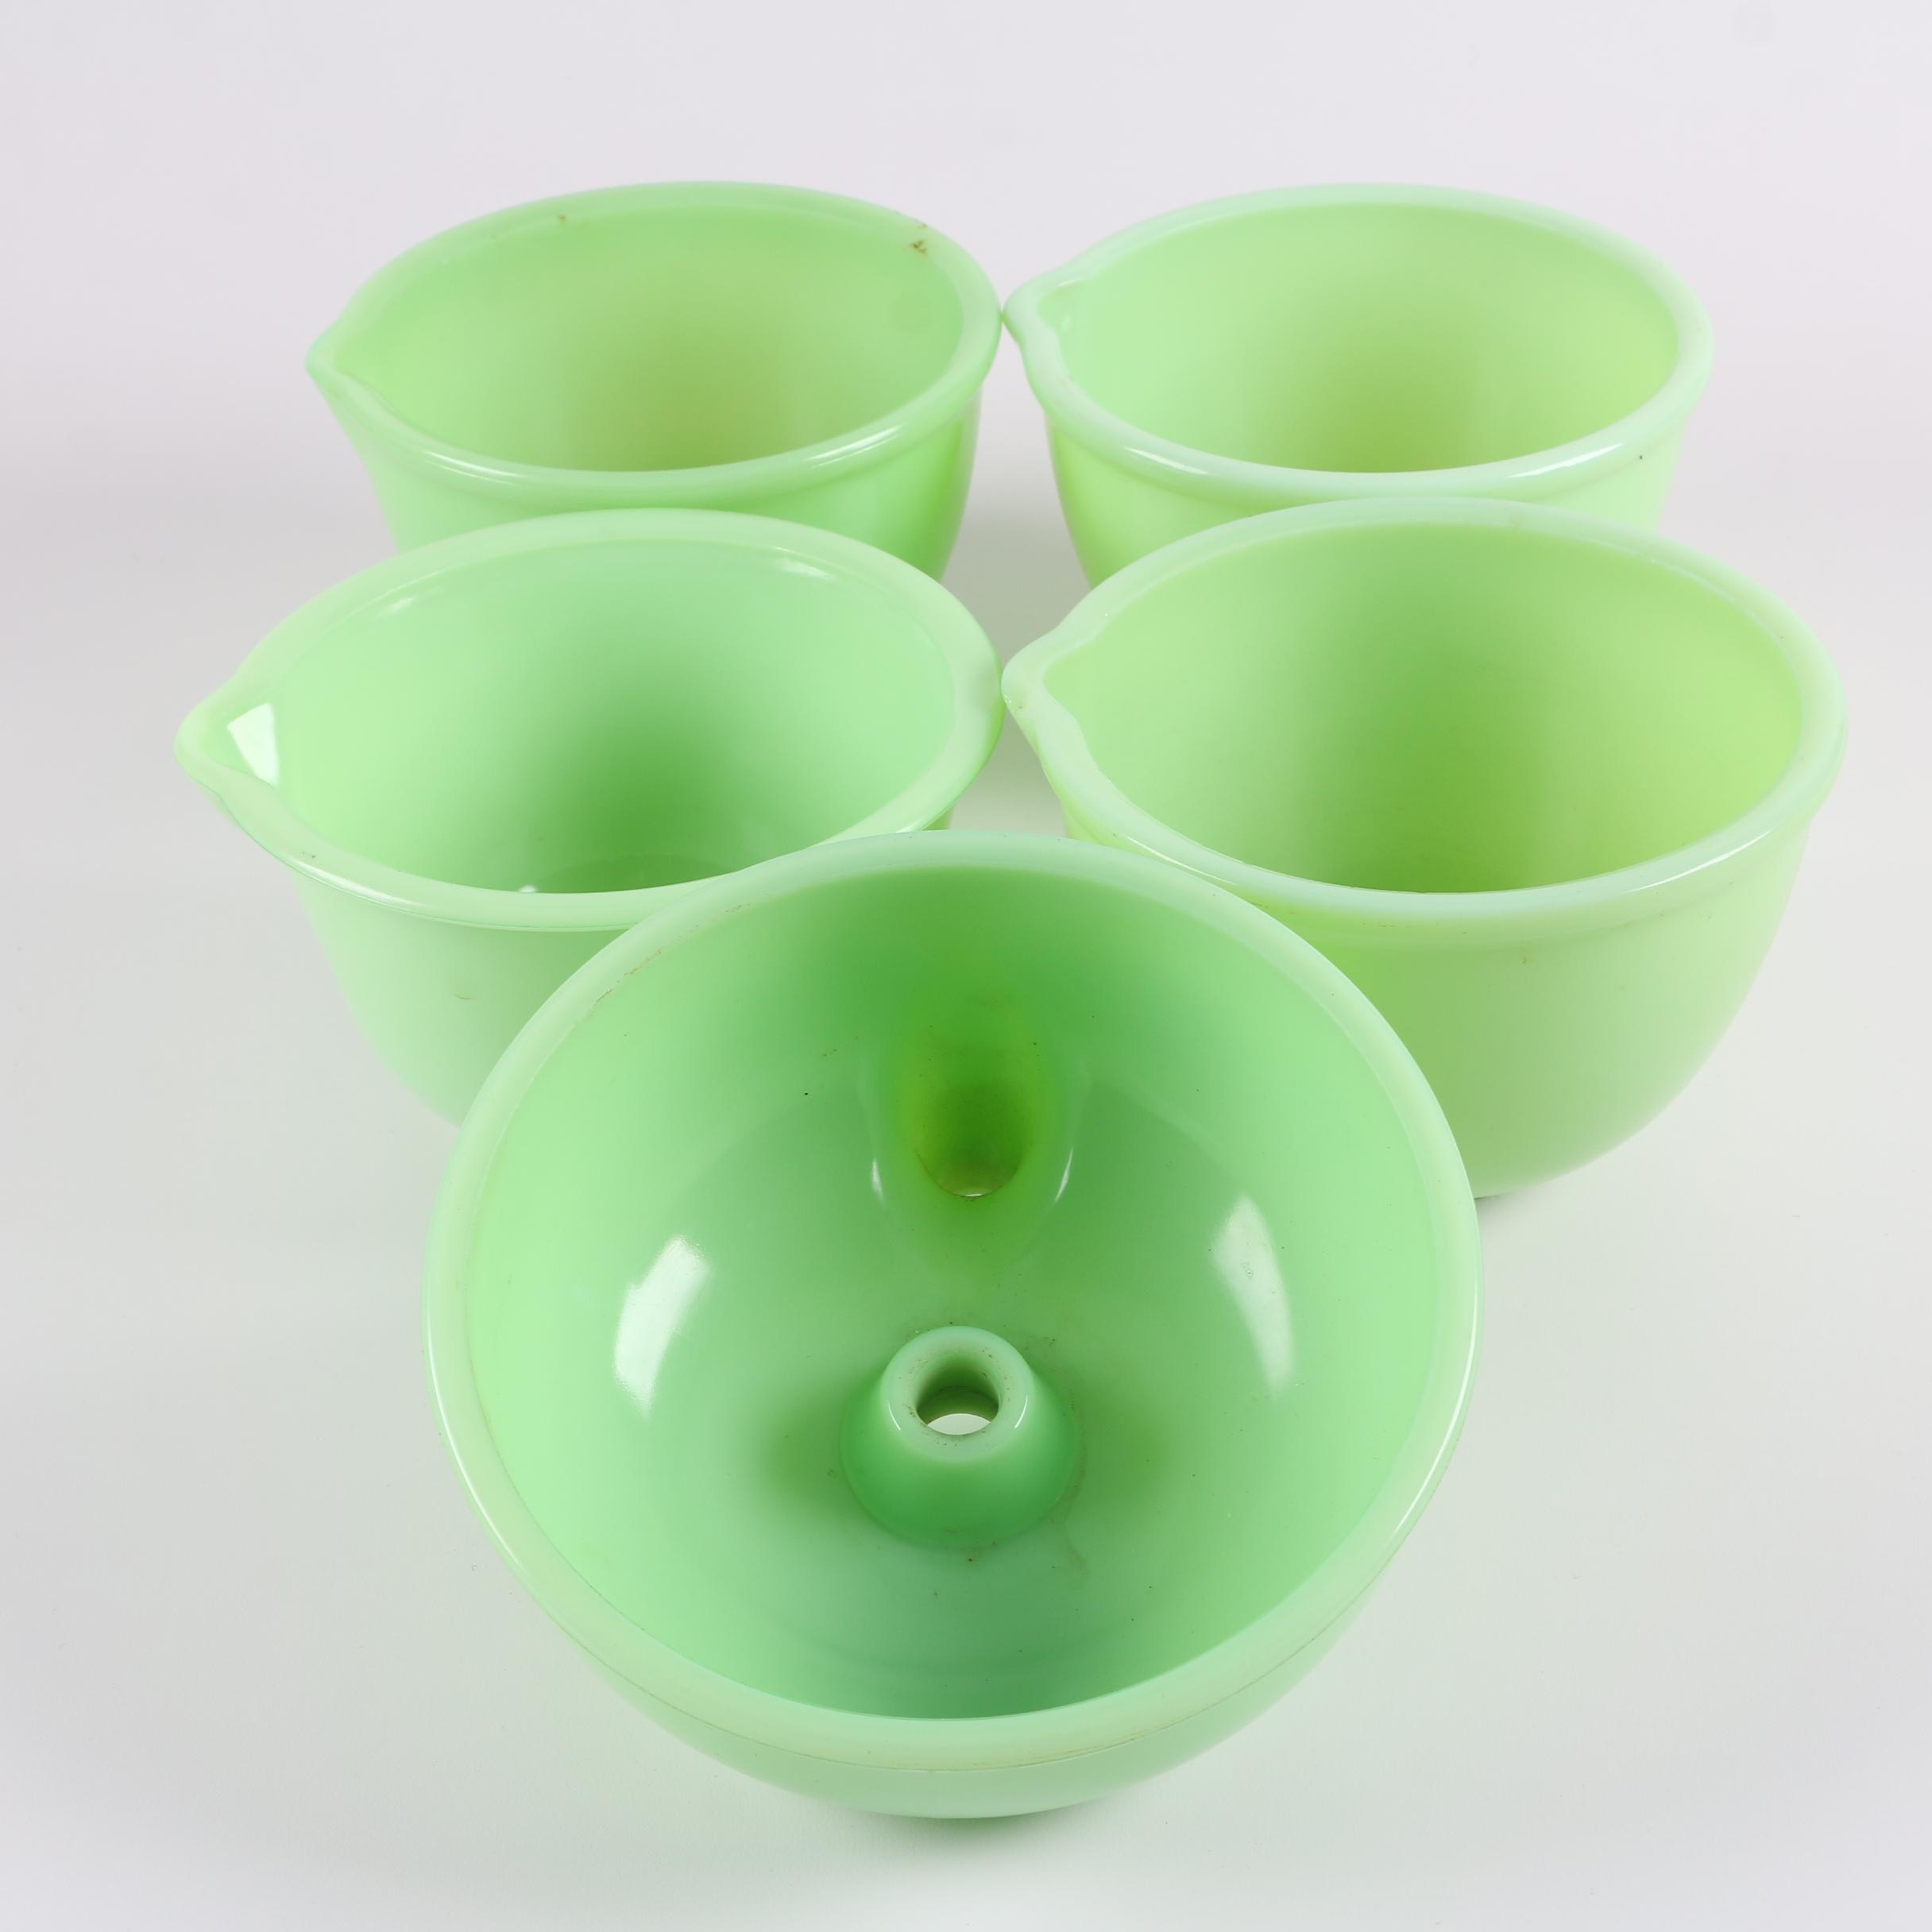 Vintage Green Milk Glass Mixing Bowls with a Juicer Attachment